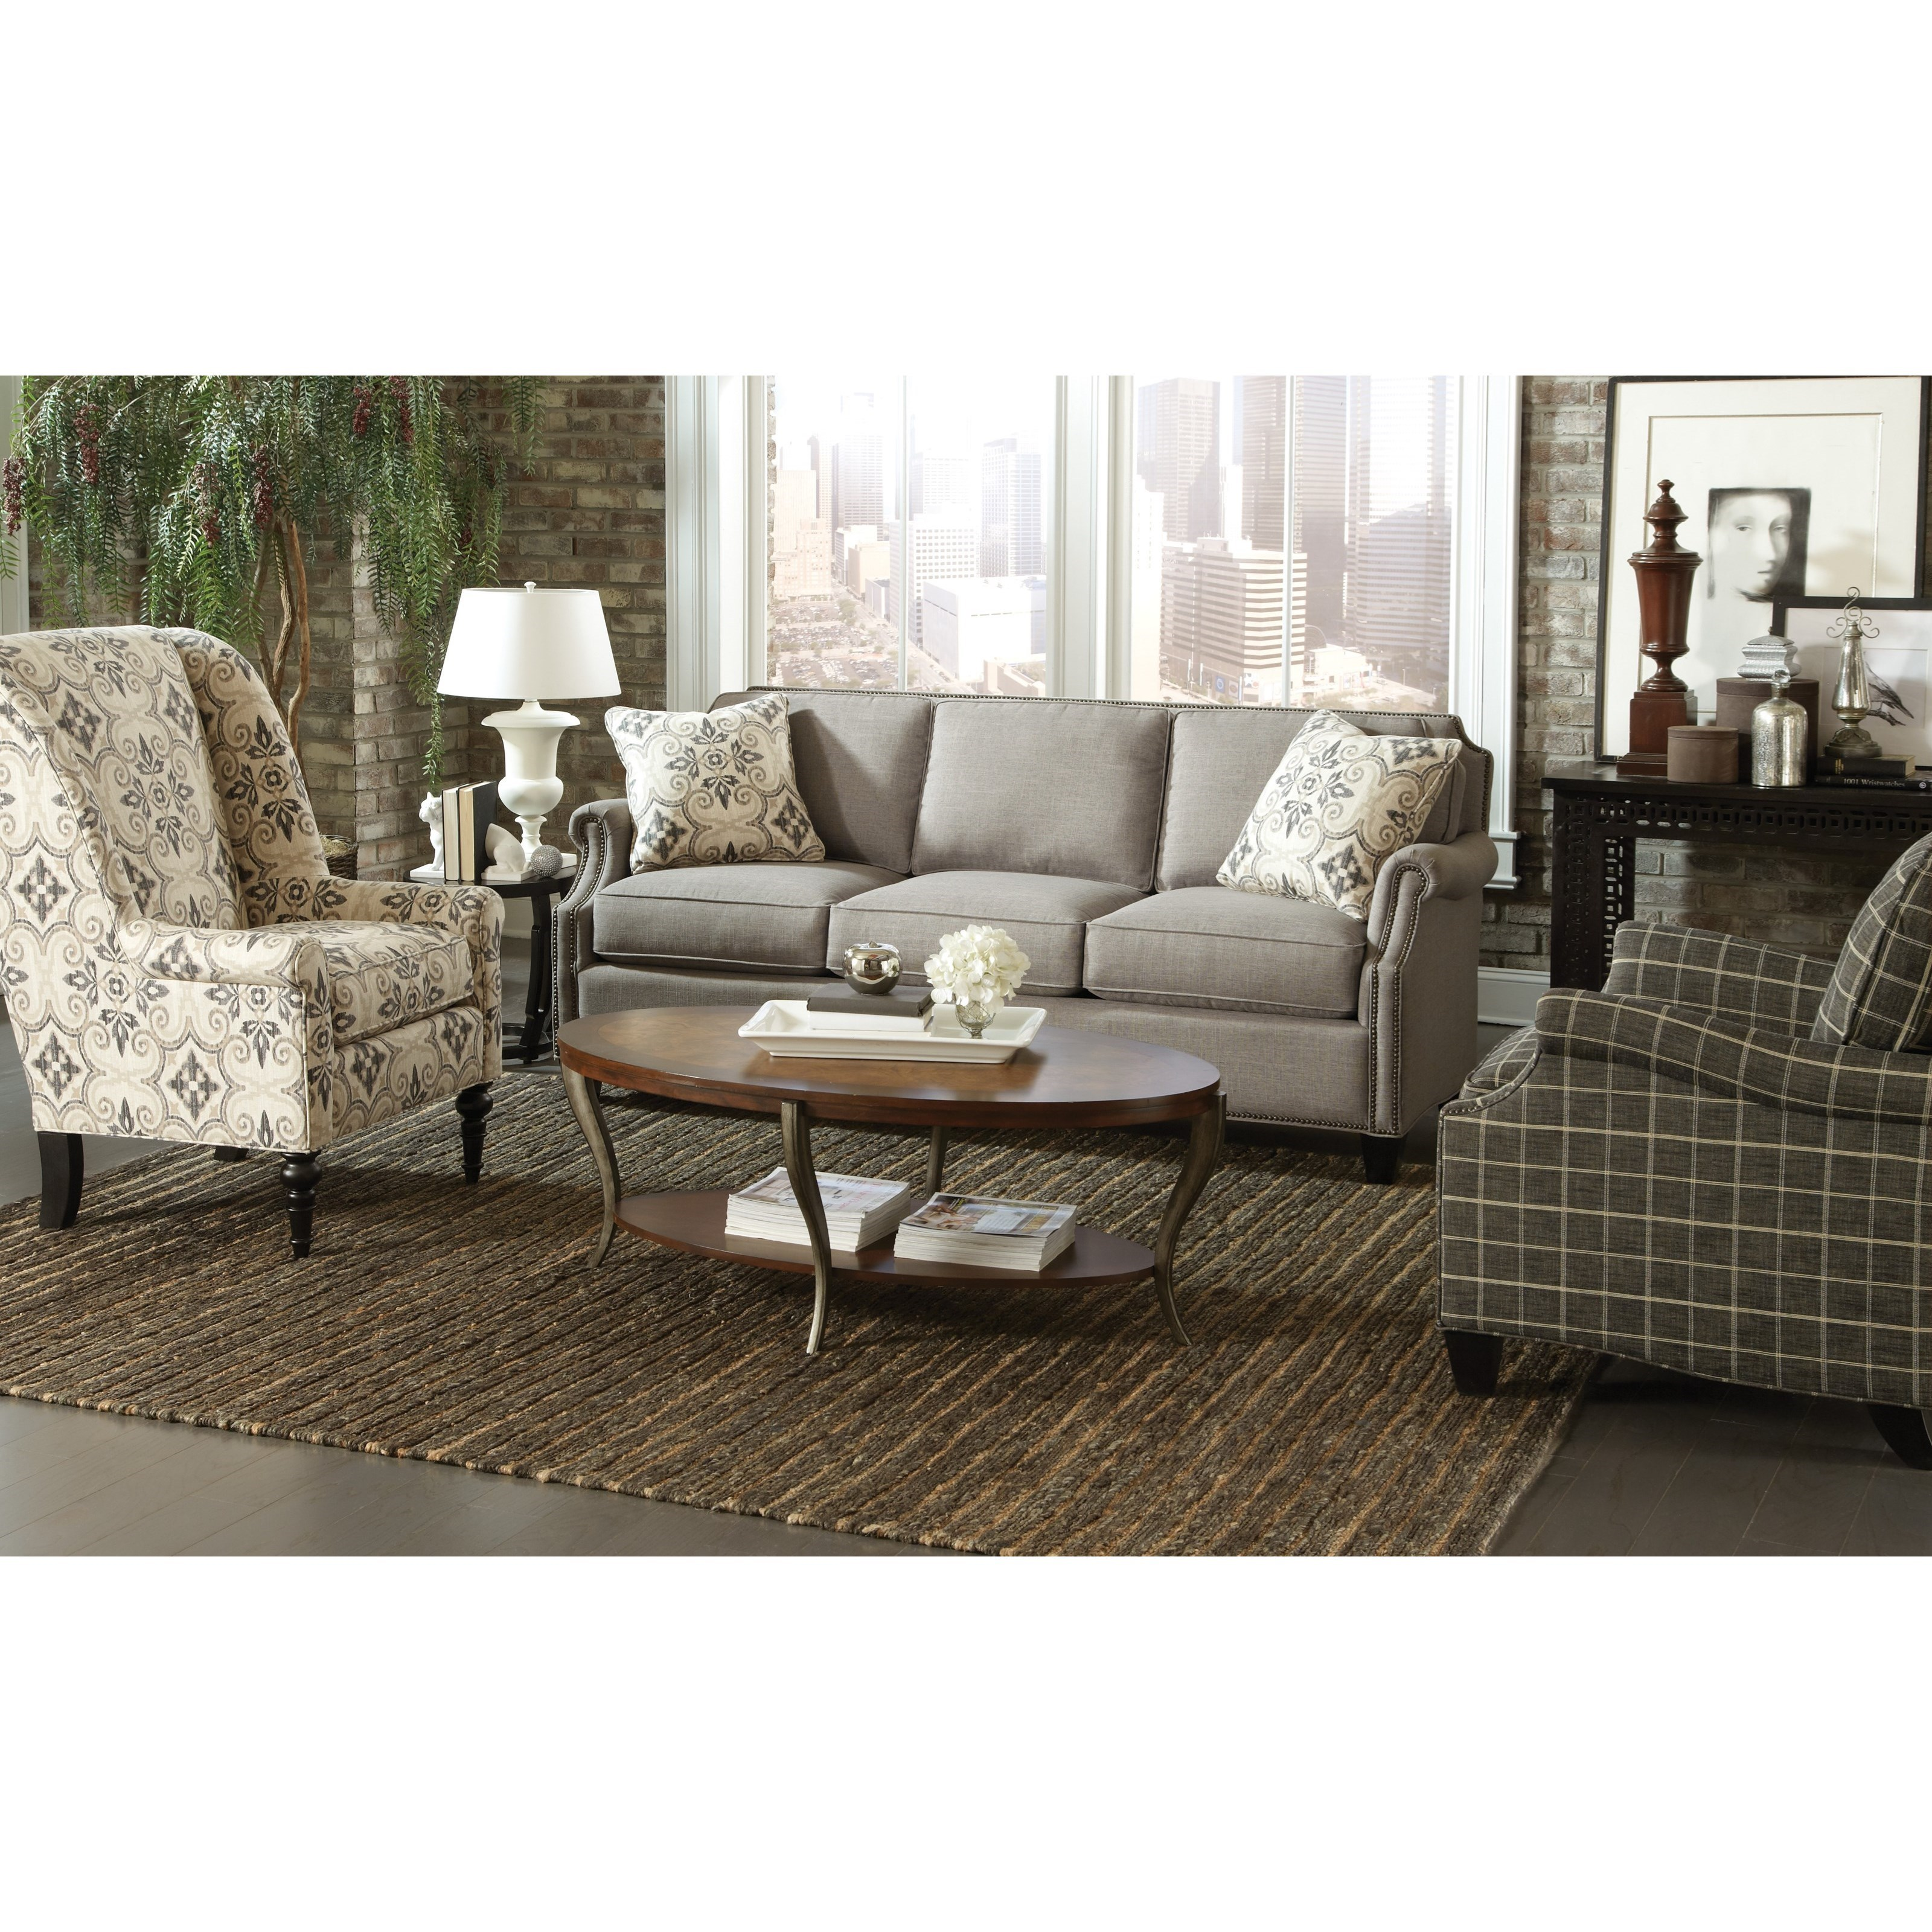 938350BD Living Room Group by Craftmaster at Suburban Furniture